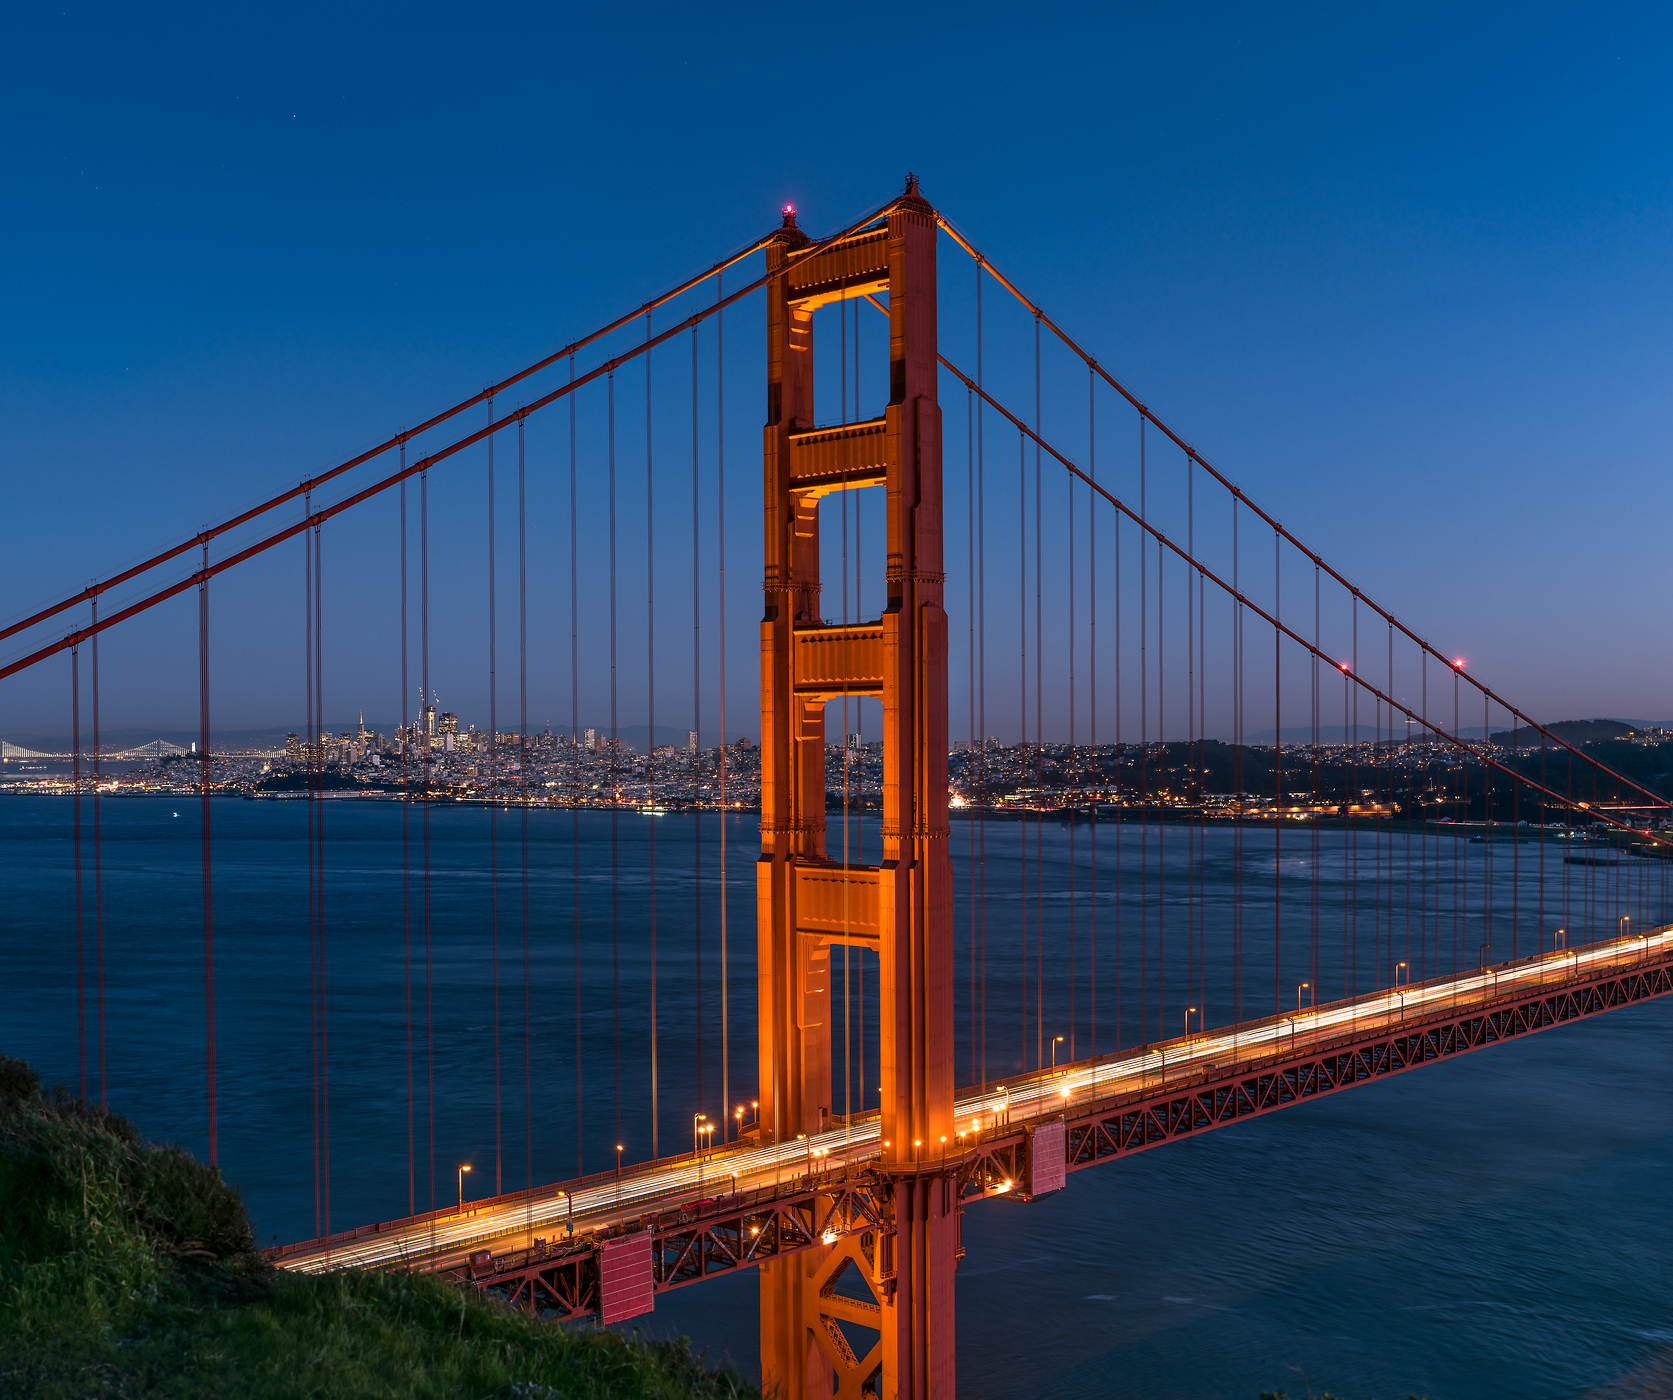 256 megapixels! A very high resolution, large-format VAST photo print of the Golden Gate Bridge, San Francisco, and the San Francisco Bay; cityscape fine art photo created by Justin Katz from Battery Spencer in Sausalito, California